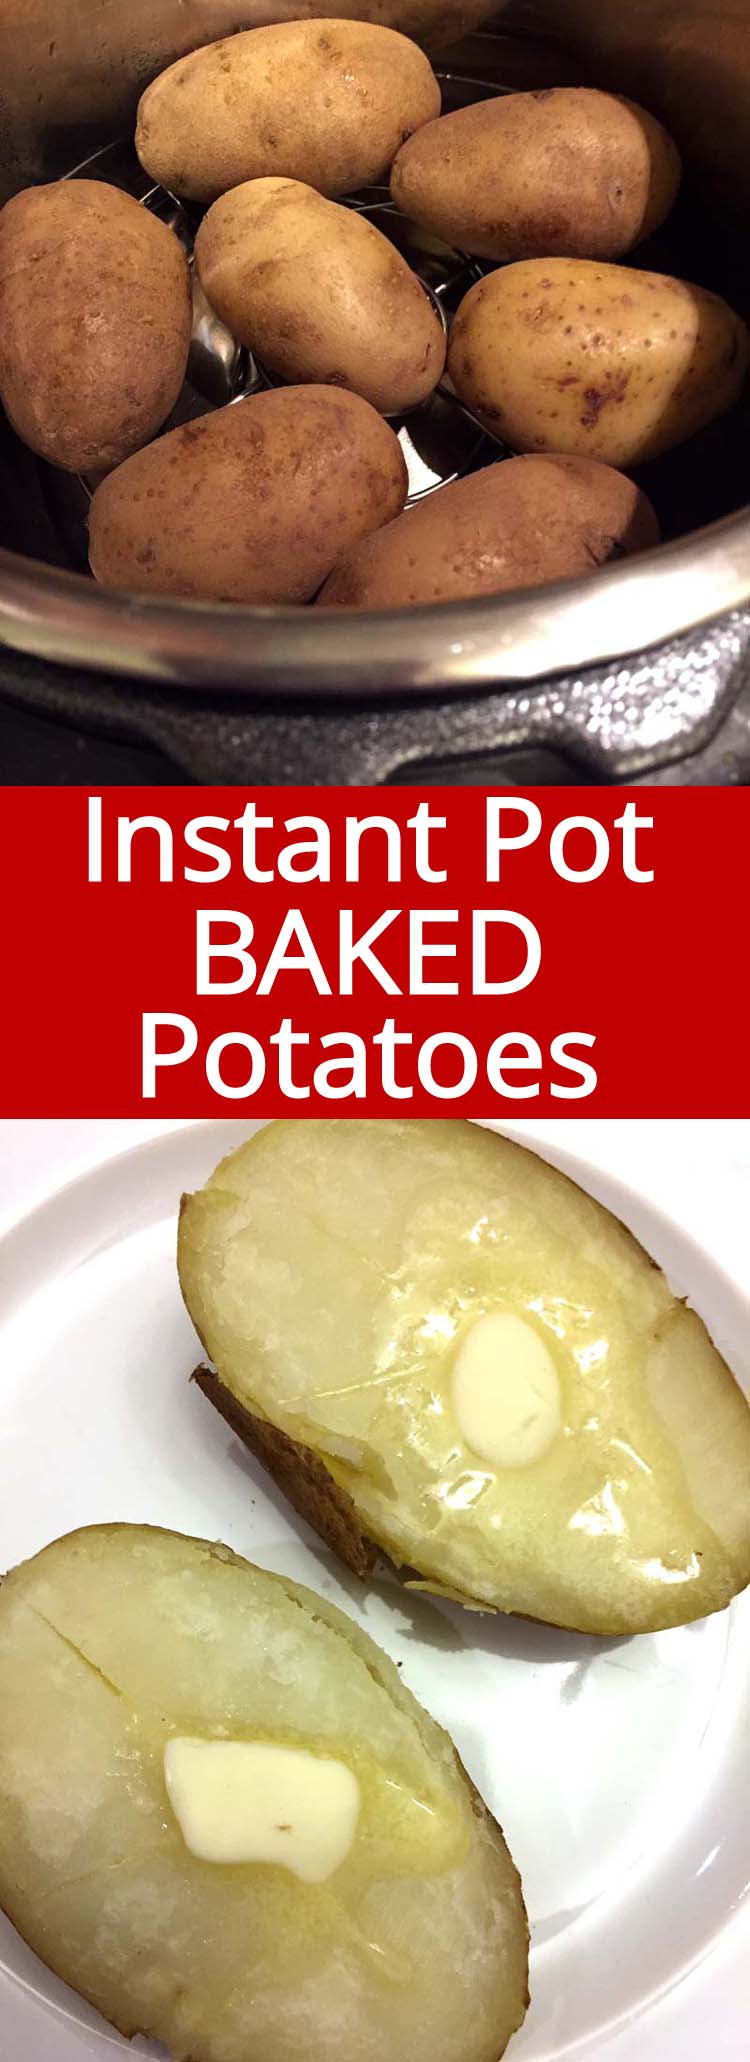 These Instant Pot baked potatoes are amazing! Taste exactly like oven baked potatoes and ready in 20 minutes!